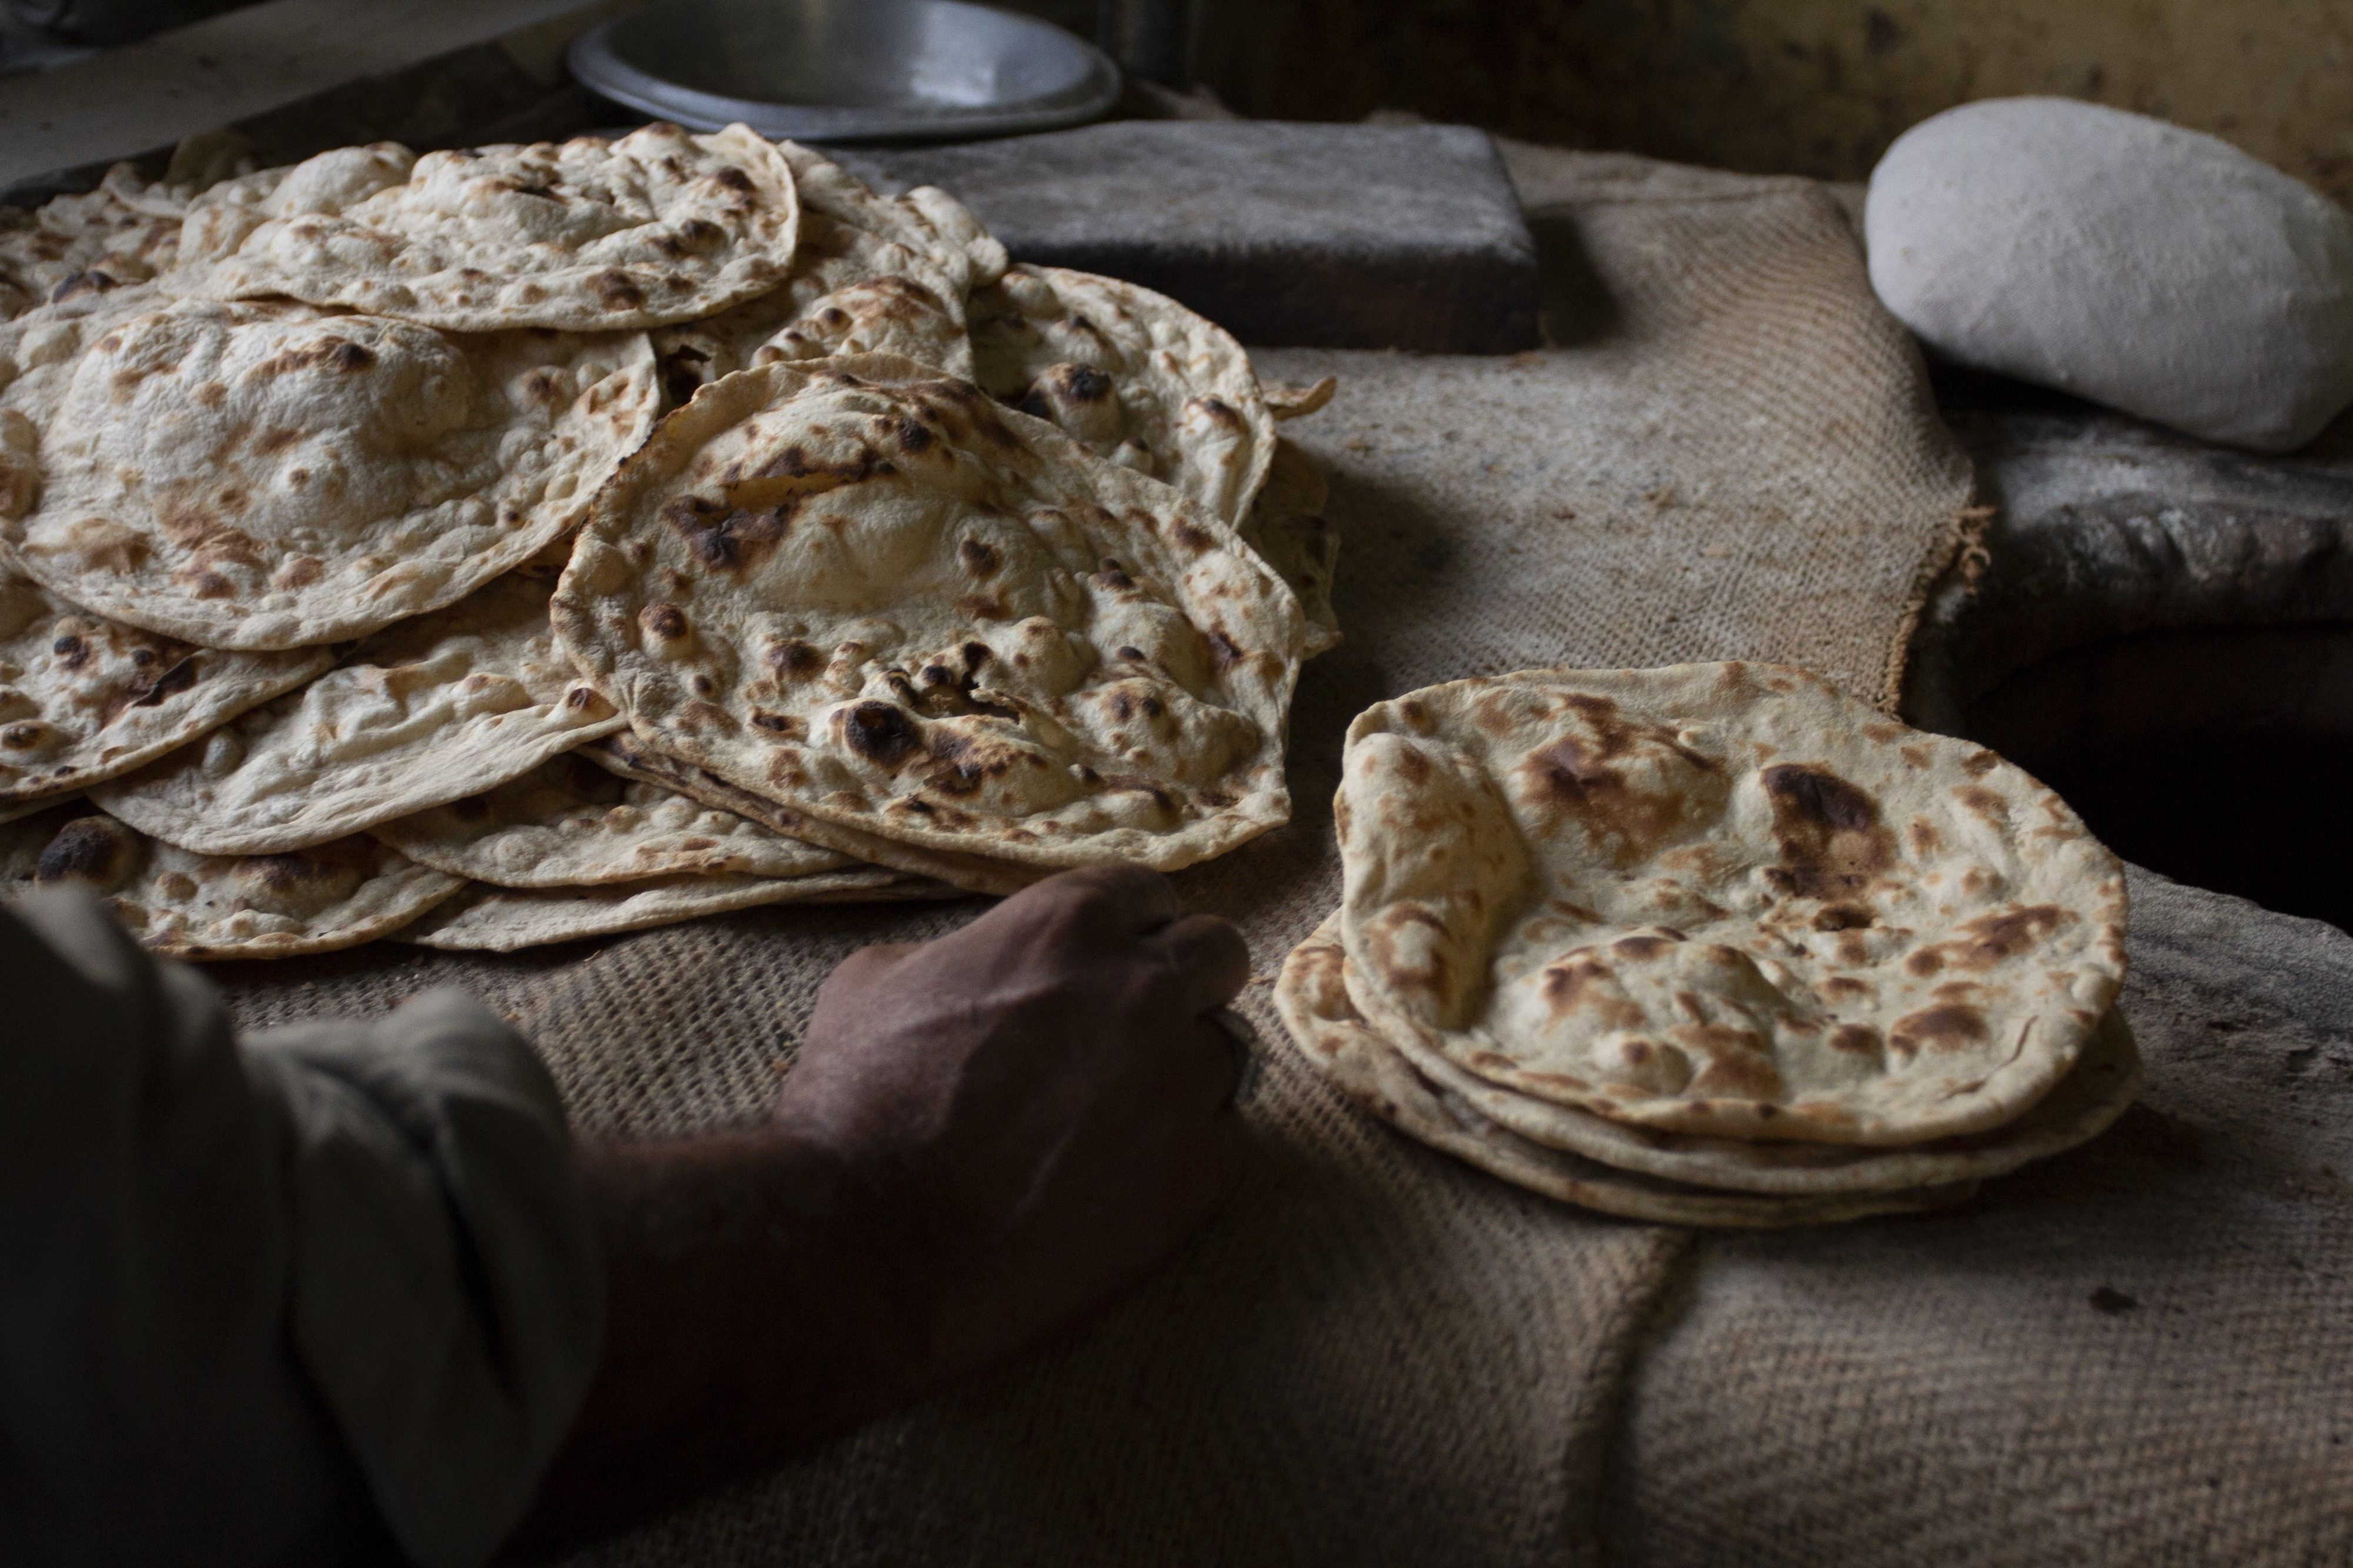 Bread is the staple food of Pakistani diets — more so than rice. Photo: Flore de Preneuf/ World Bank